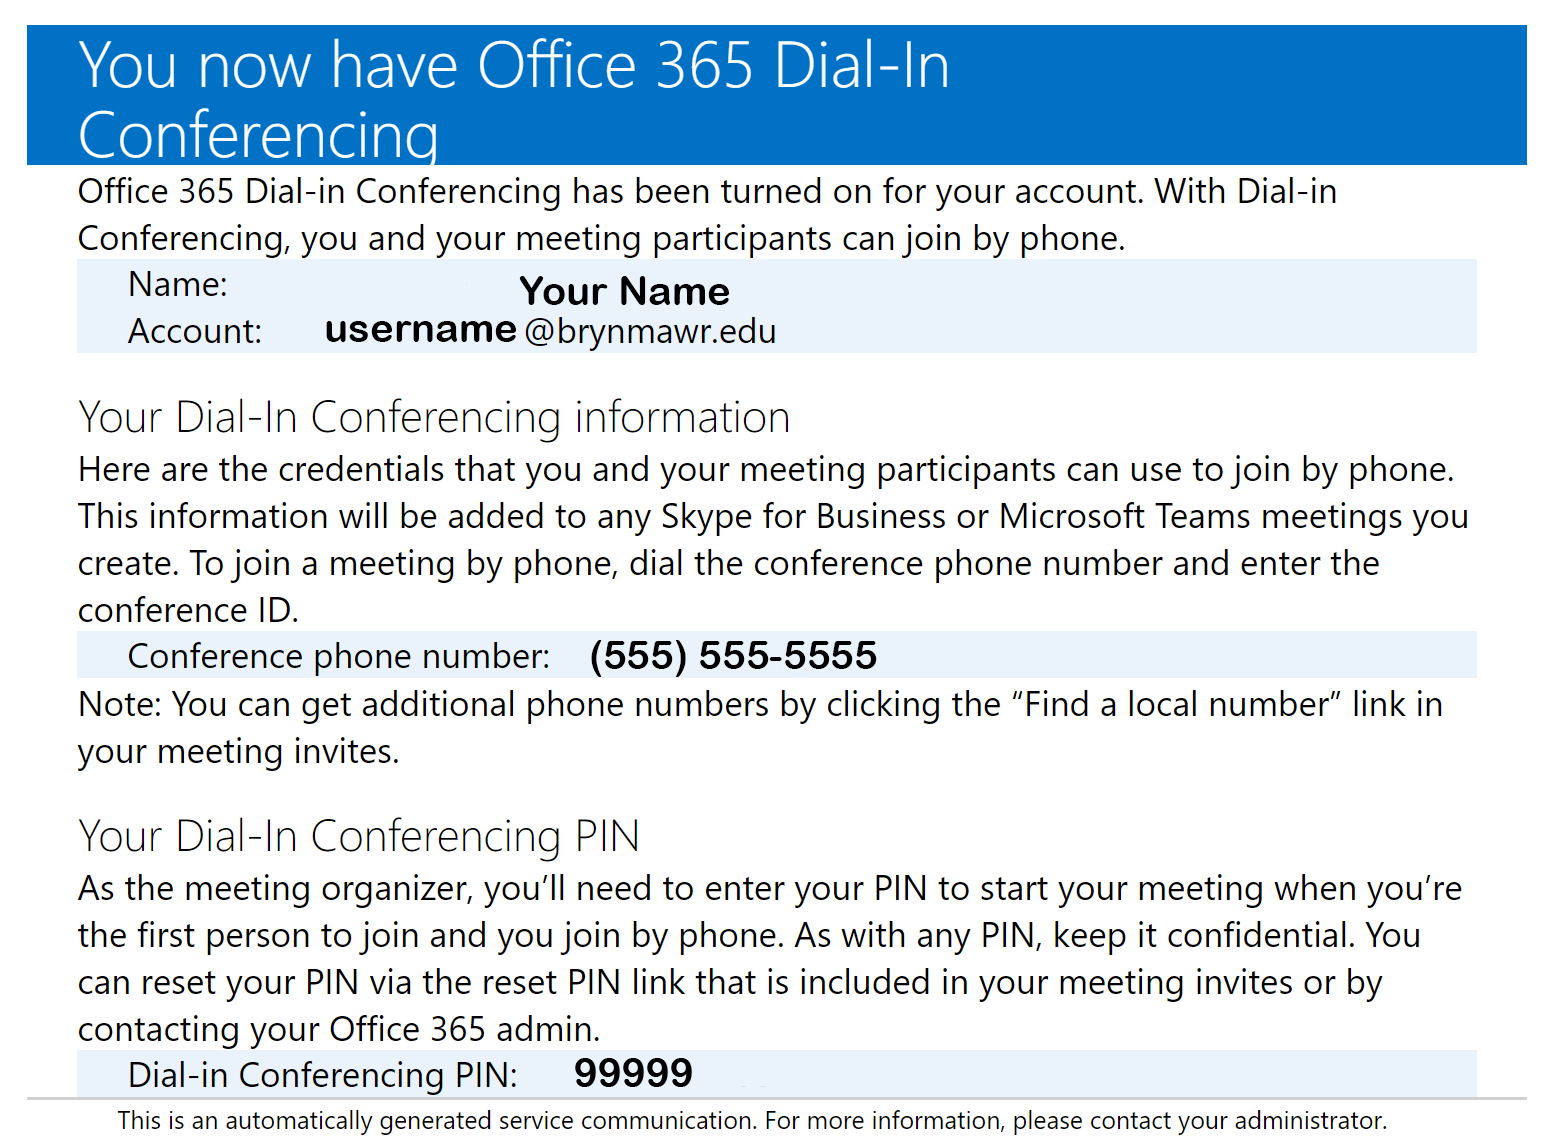 2 of 2 screenshots of the Office 365 Dial-In Conferencing welcome email